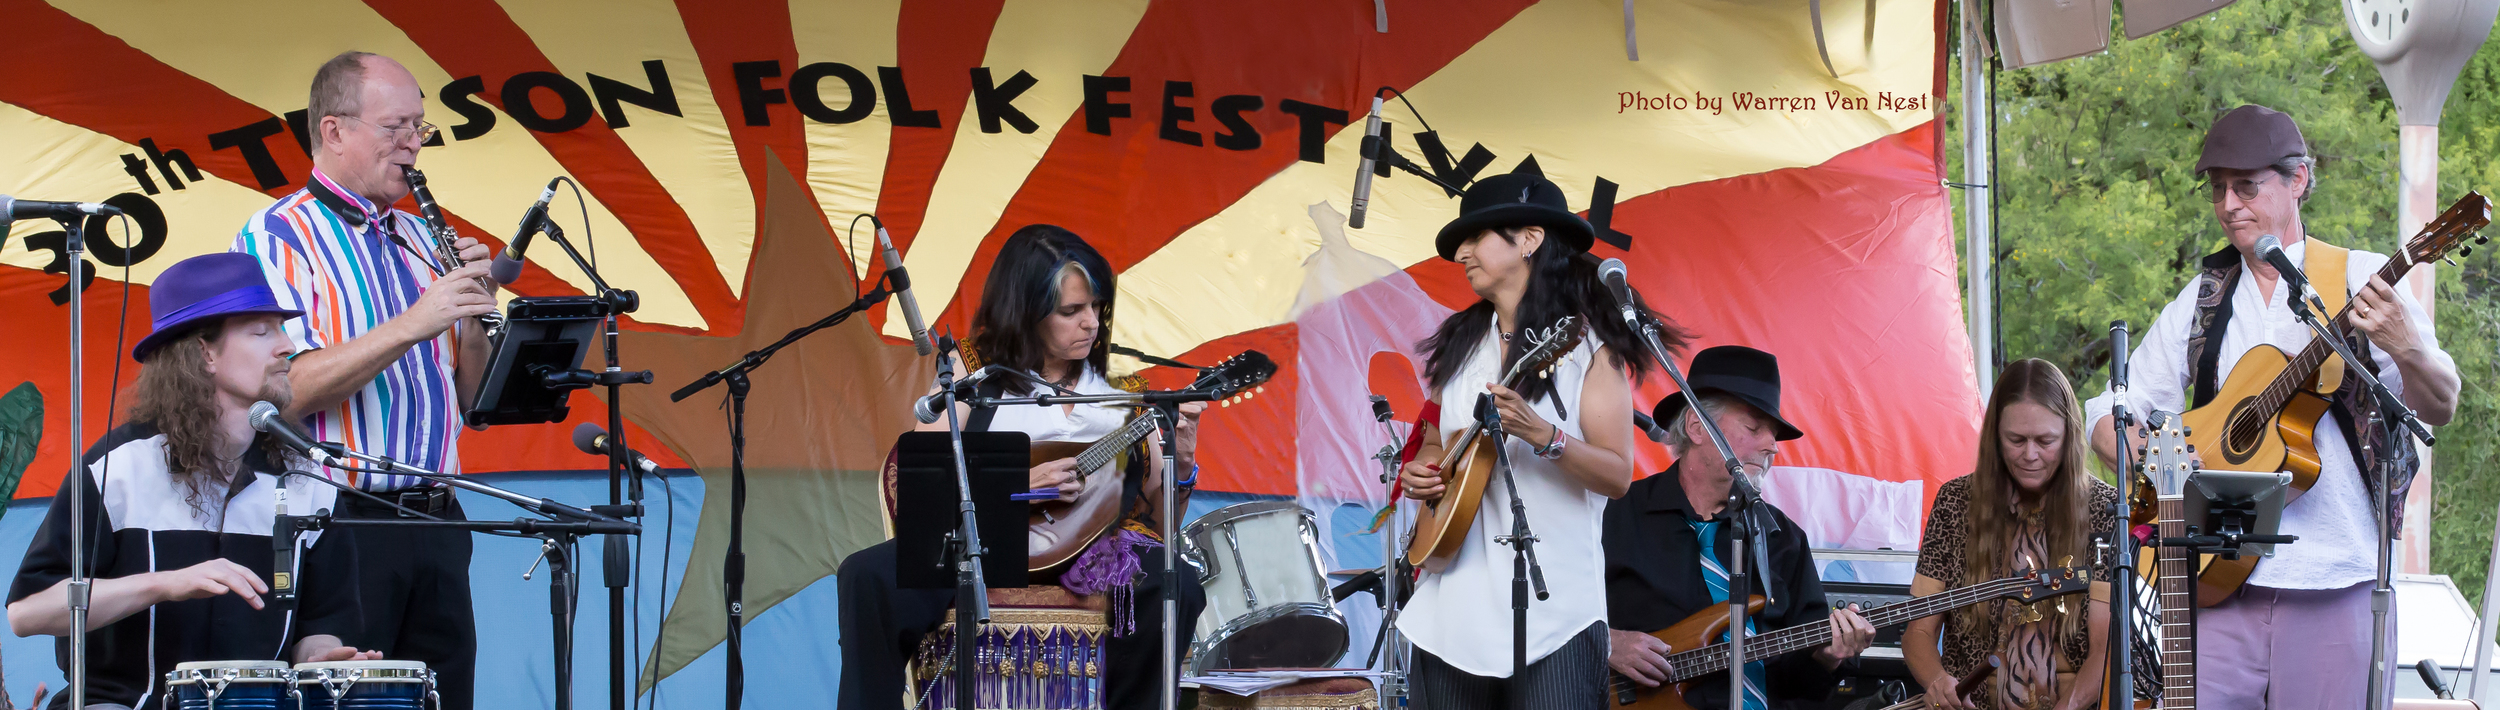 on the main stage at the Tucson Folk Fest 2015